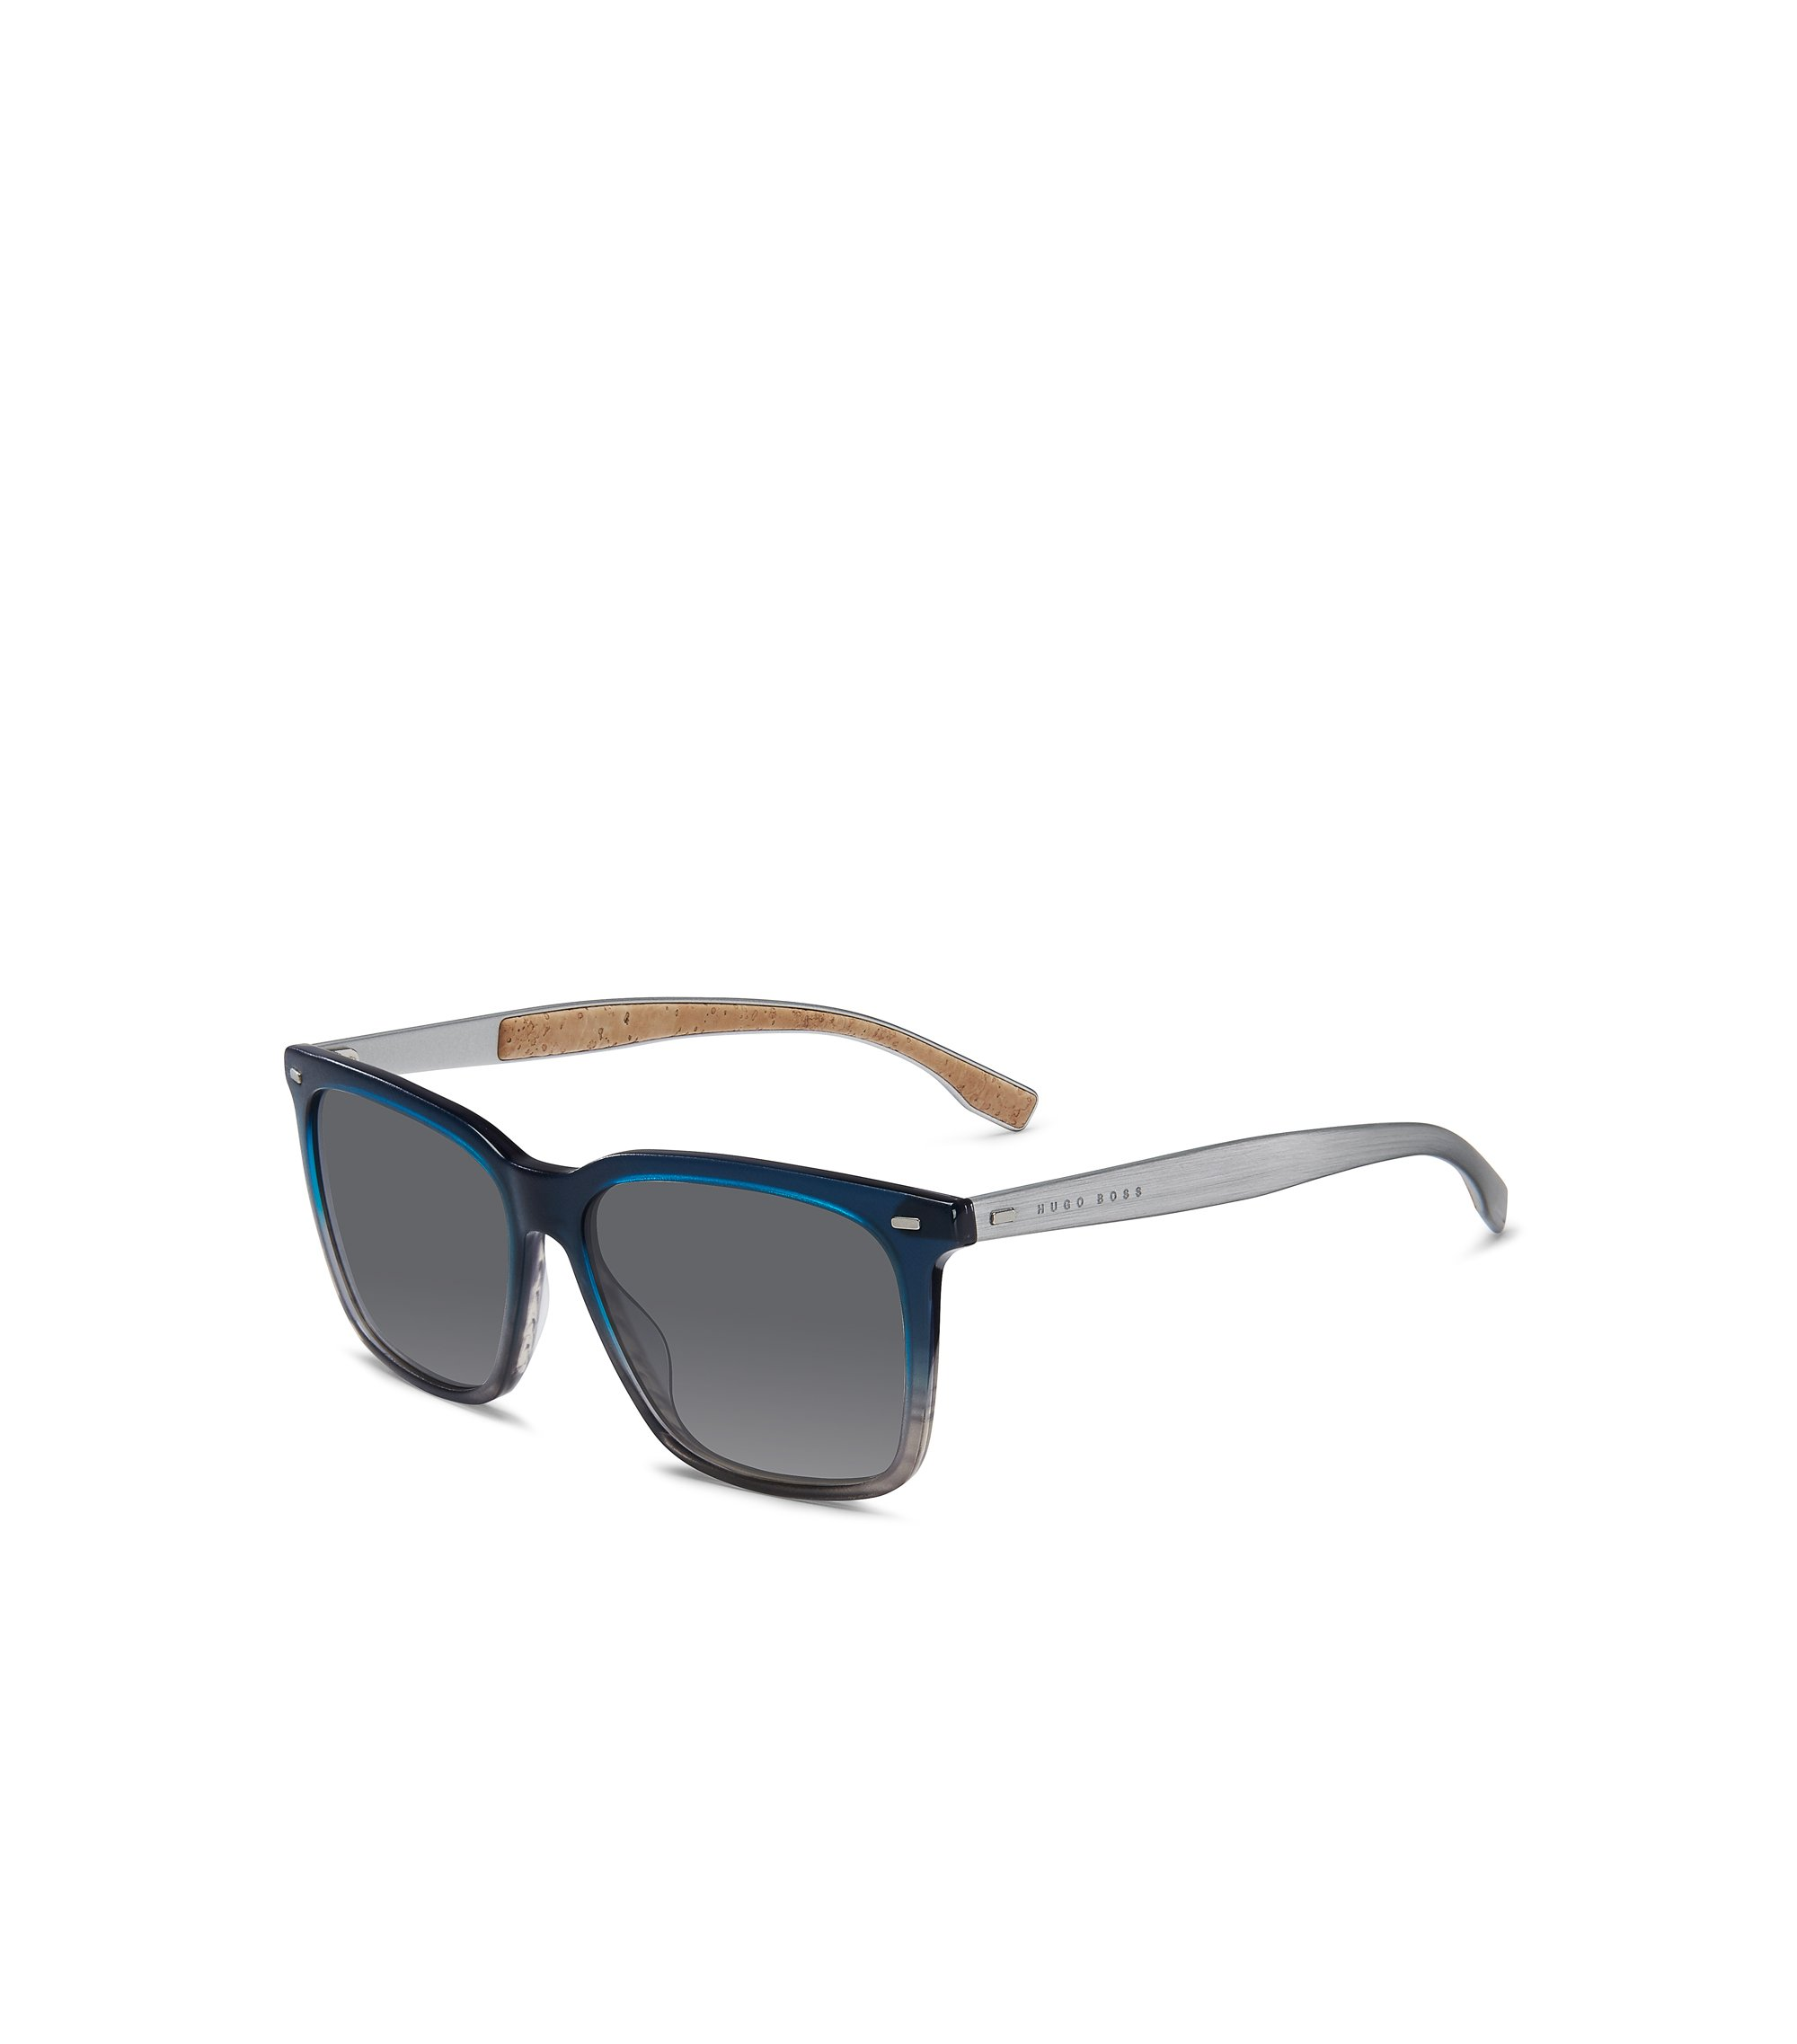 Grey Acetate Rectangular Sunglasses | BOSS 0883S, Assorted-Pre-Pack